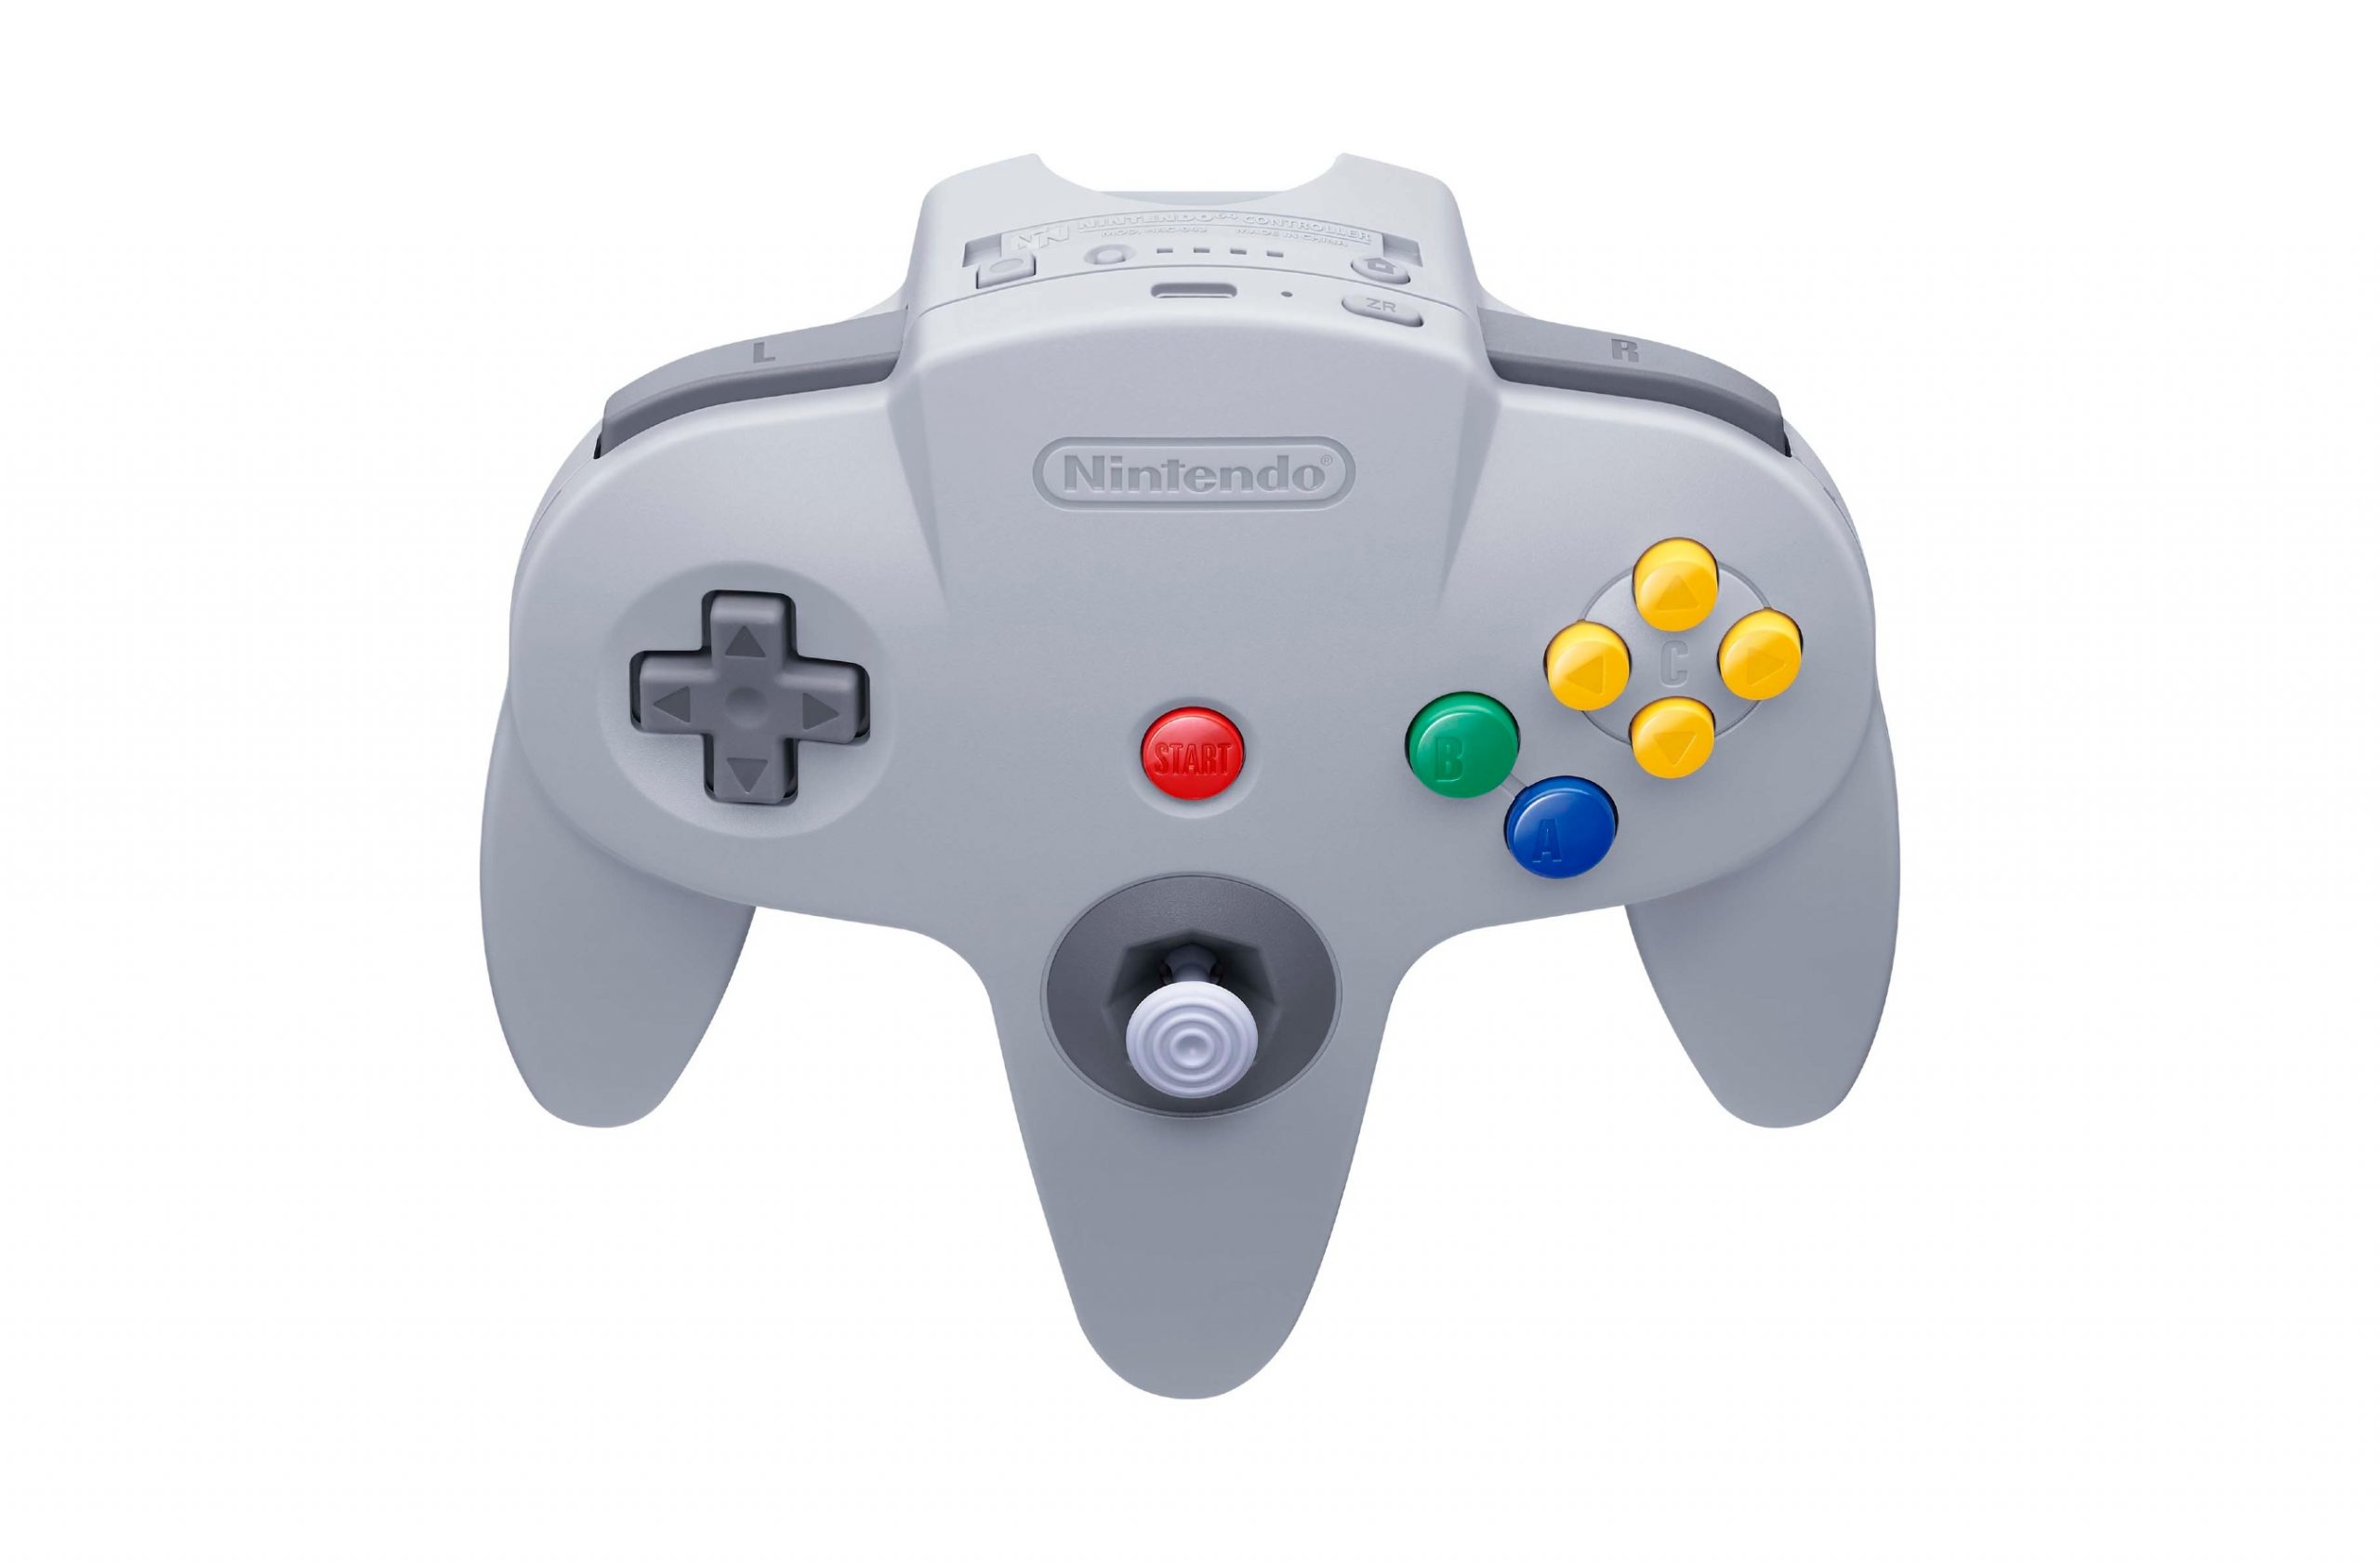 Photos of the N64 and SEGA Genesis Nintendo Switch Online controllers